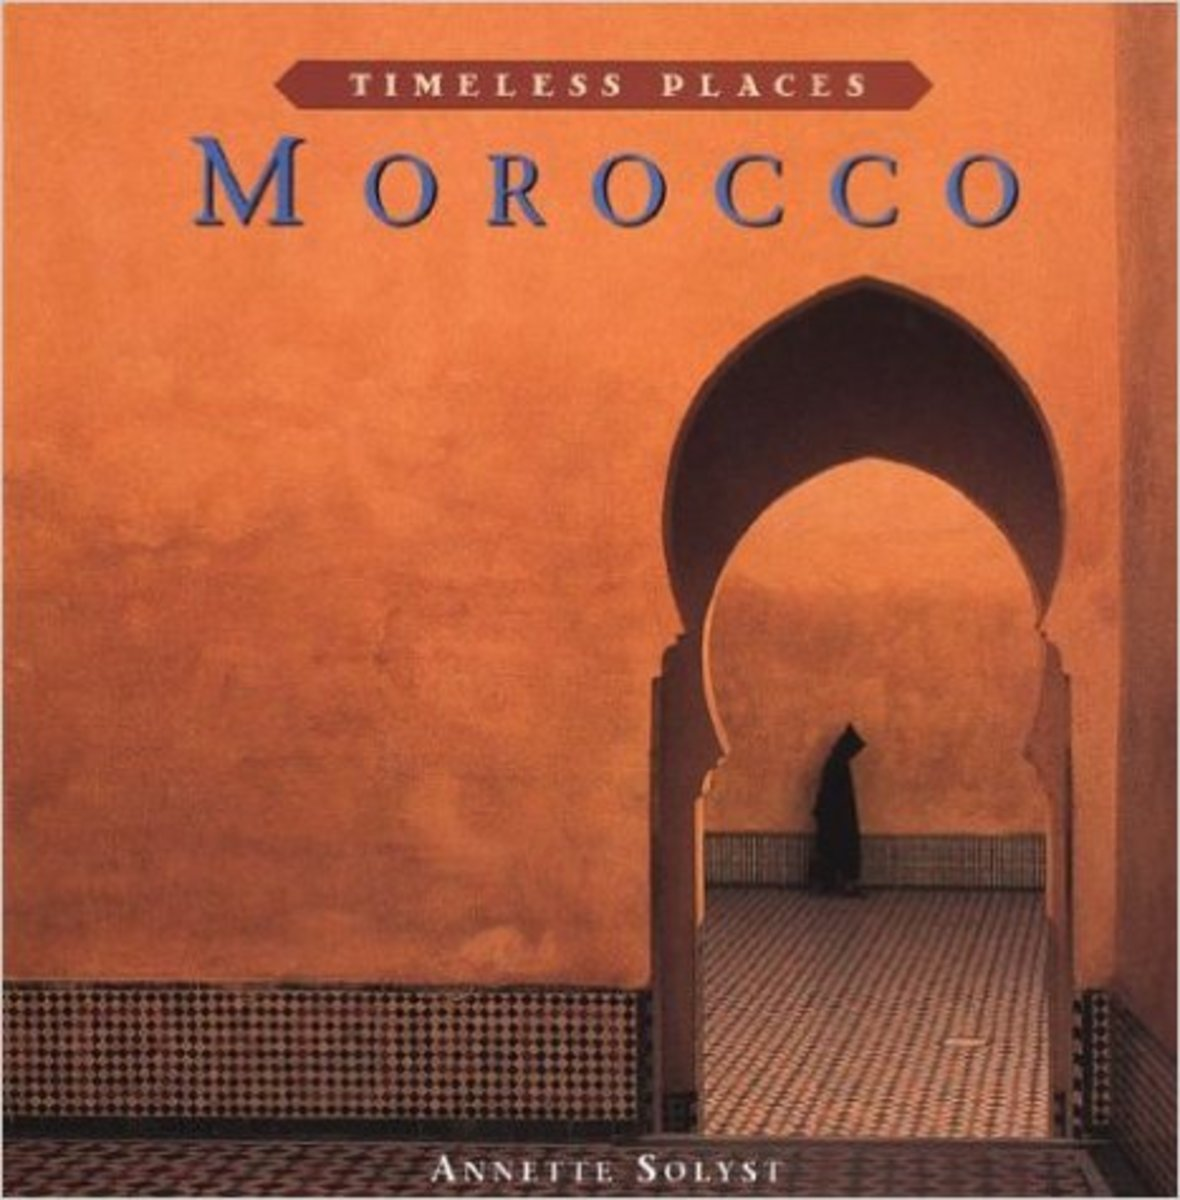 Morocco by Annette Solyst